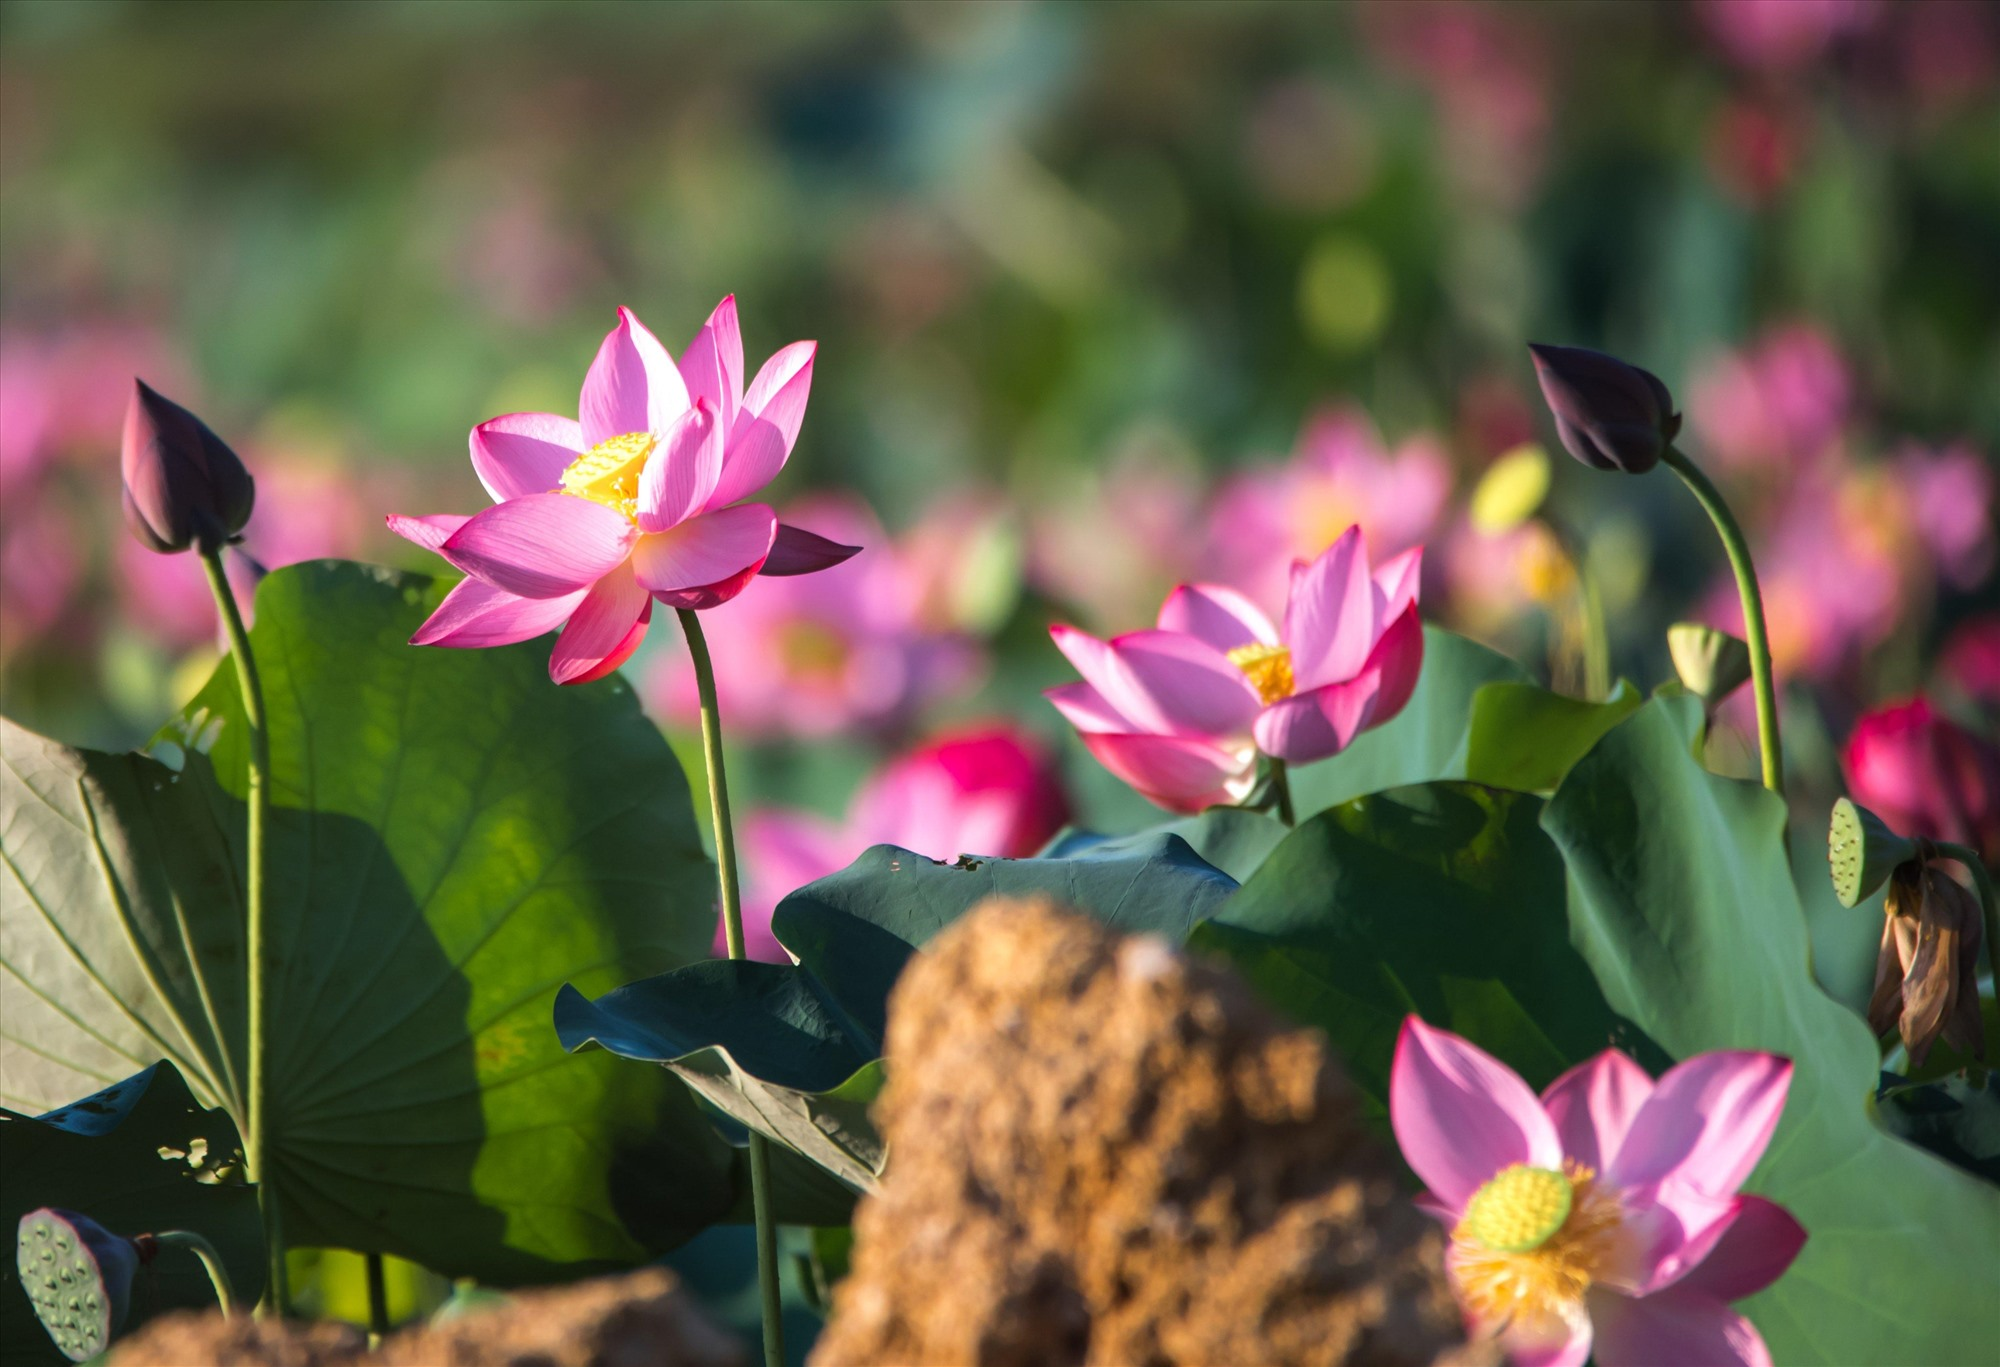 Lotus flowers are great in the early morning, from 5 to 6 am.